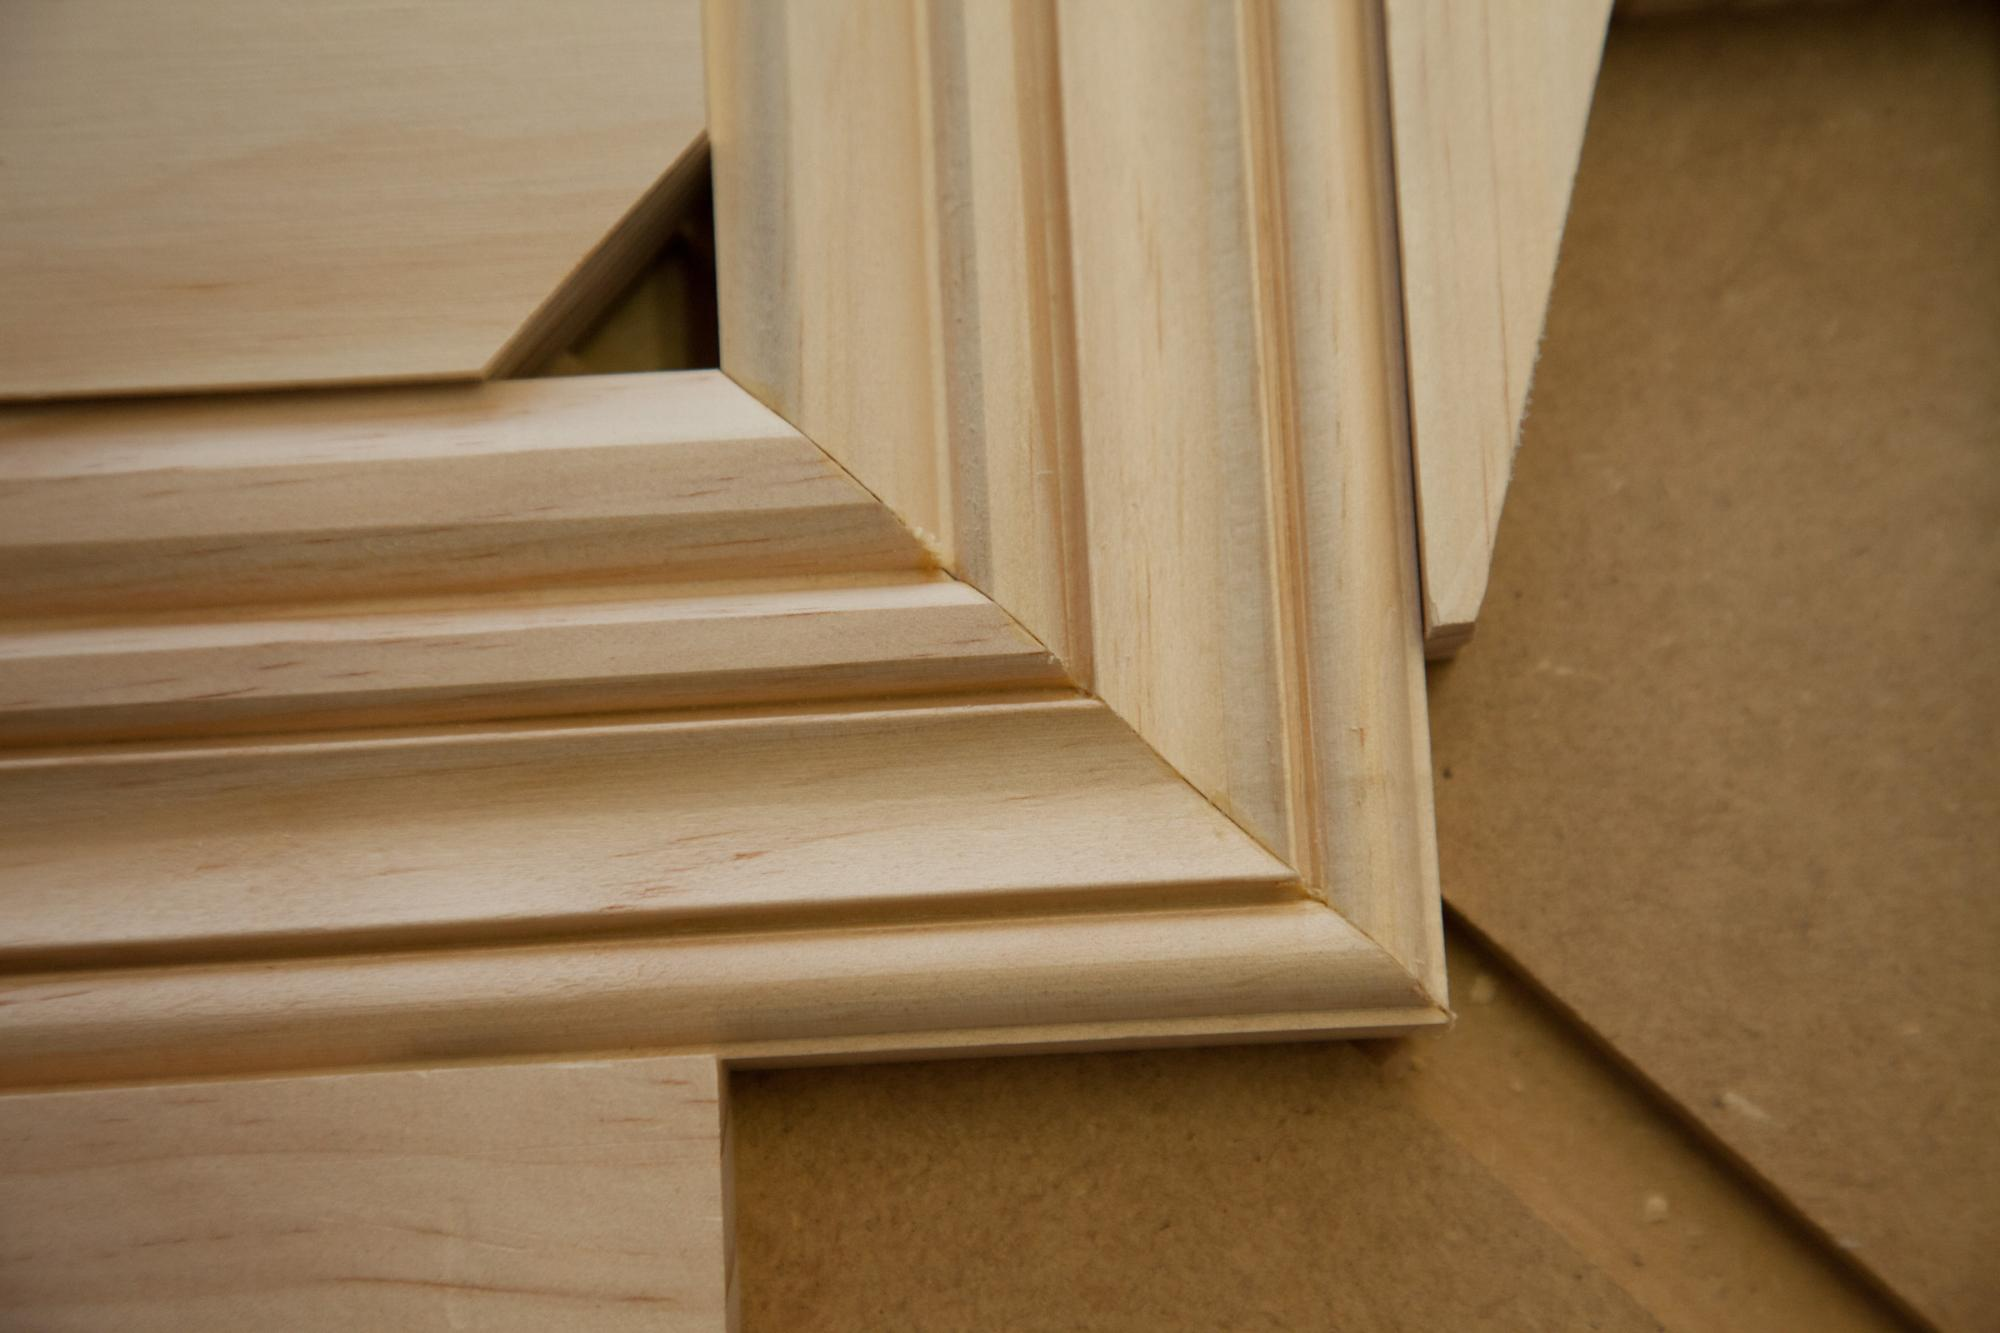 Picture Frames Part 2-picture-frame-photos-2.jpg